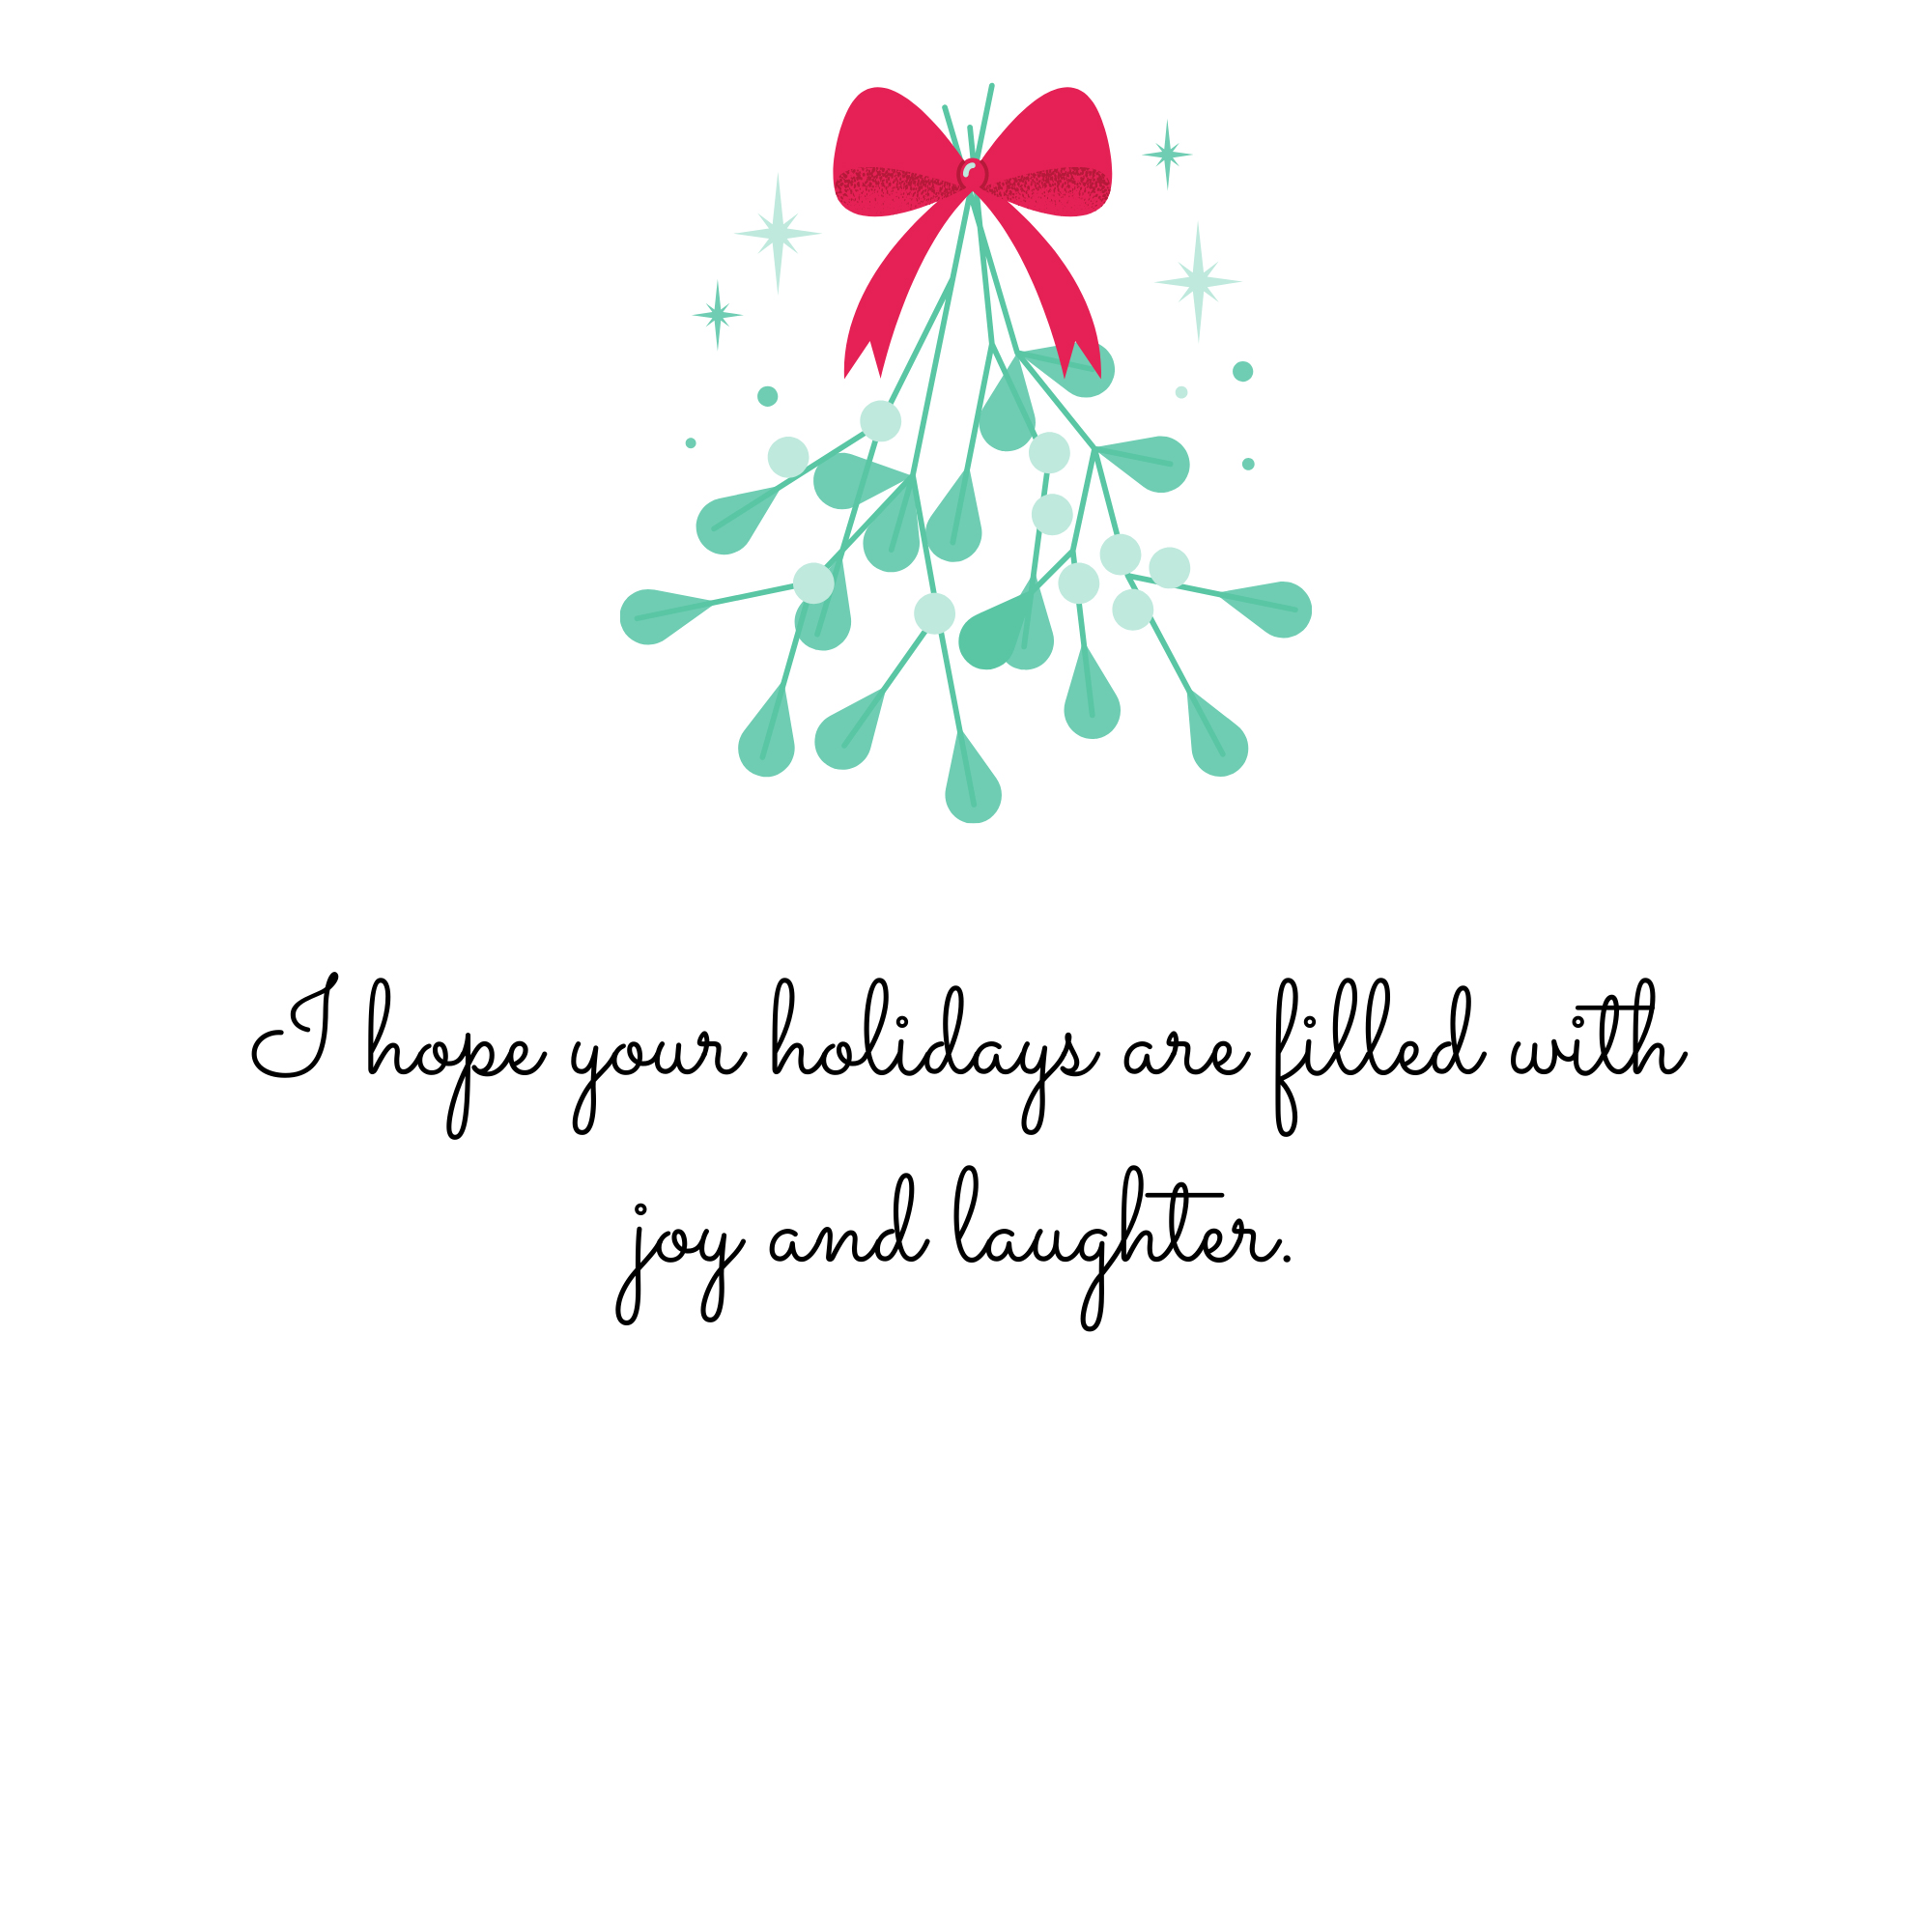 I hope your holidays are filled with joy and laughter.